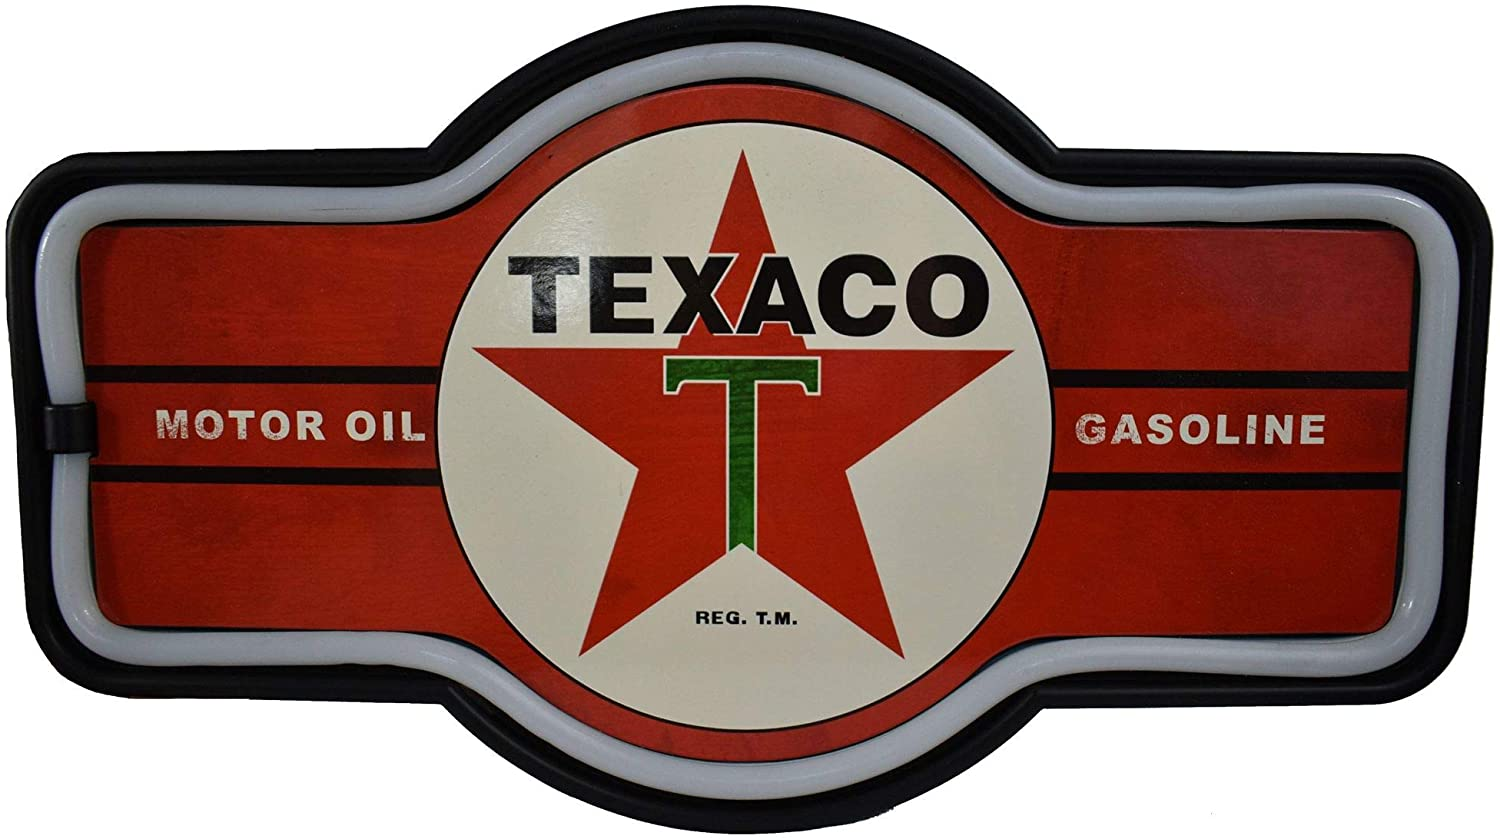 Like Neo Sign Decor Lighting Sign LED Rope Bar Sign Texaco Chevron express H24 Texaco X 3 X W44 cm Wall object American goods American goods